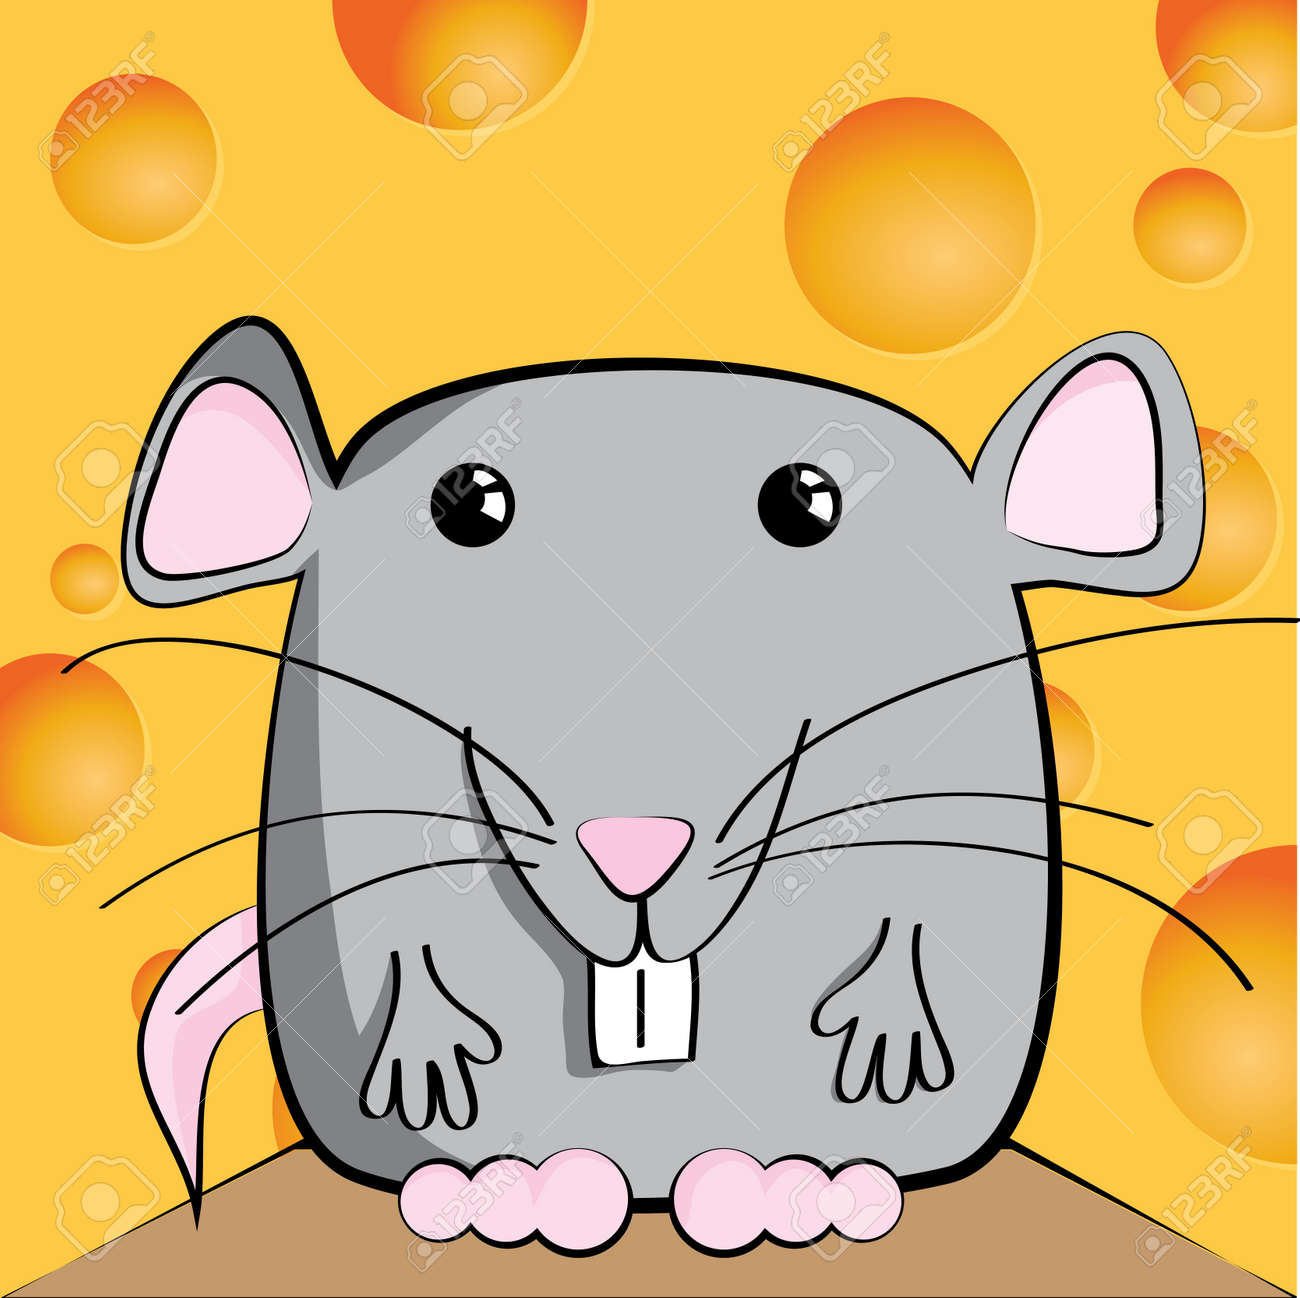 Cute mouse cartoon character Stock Vector - 12402259